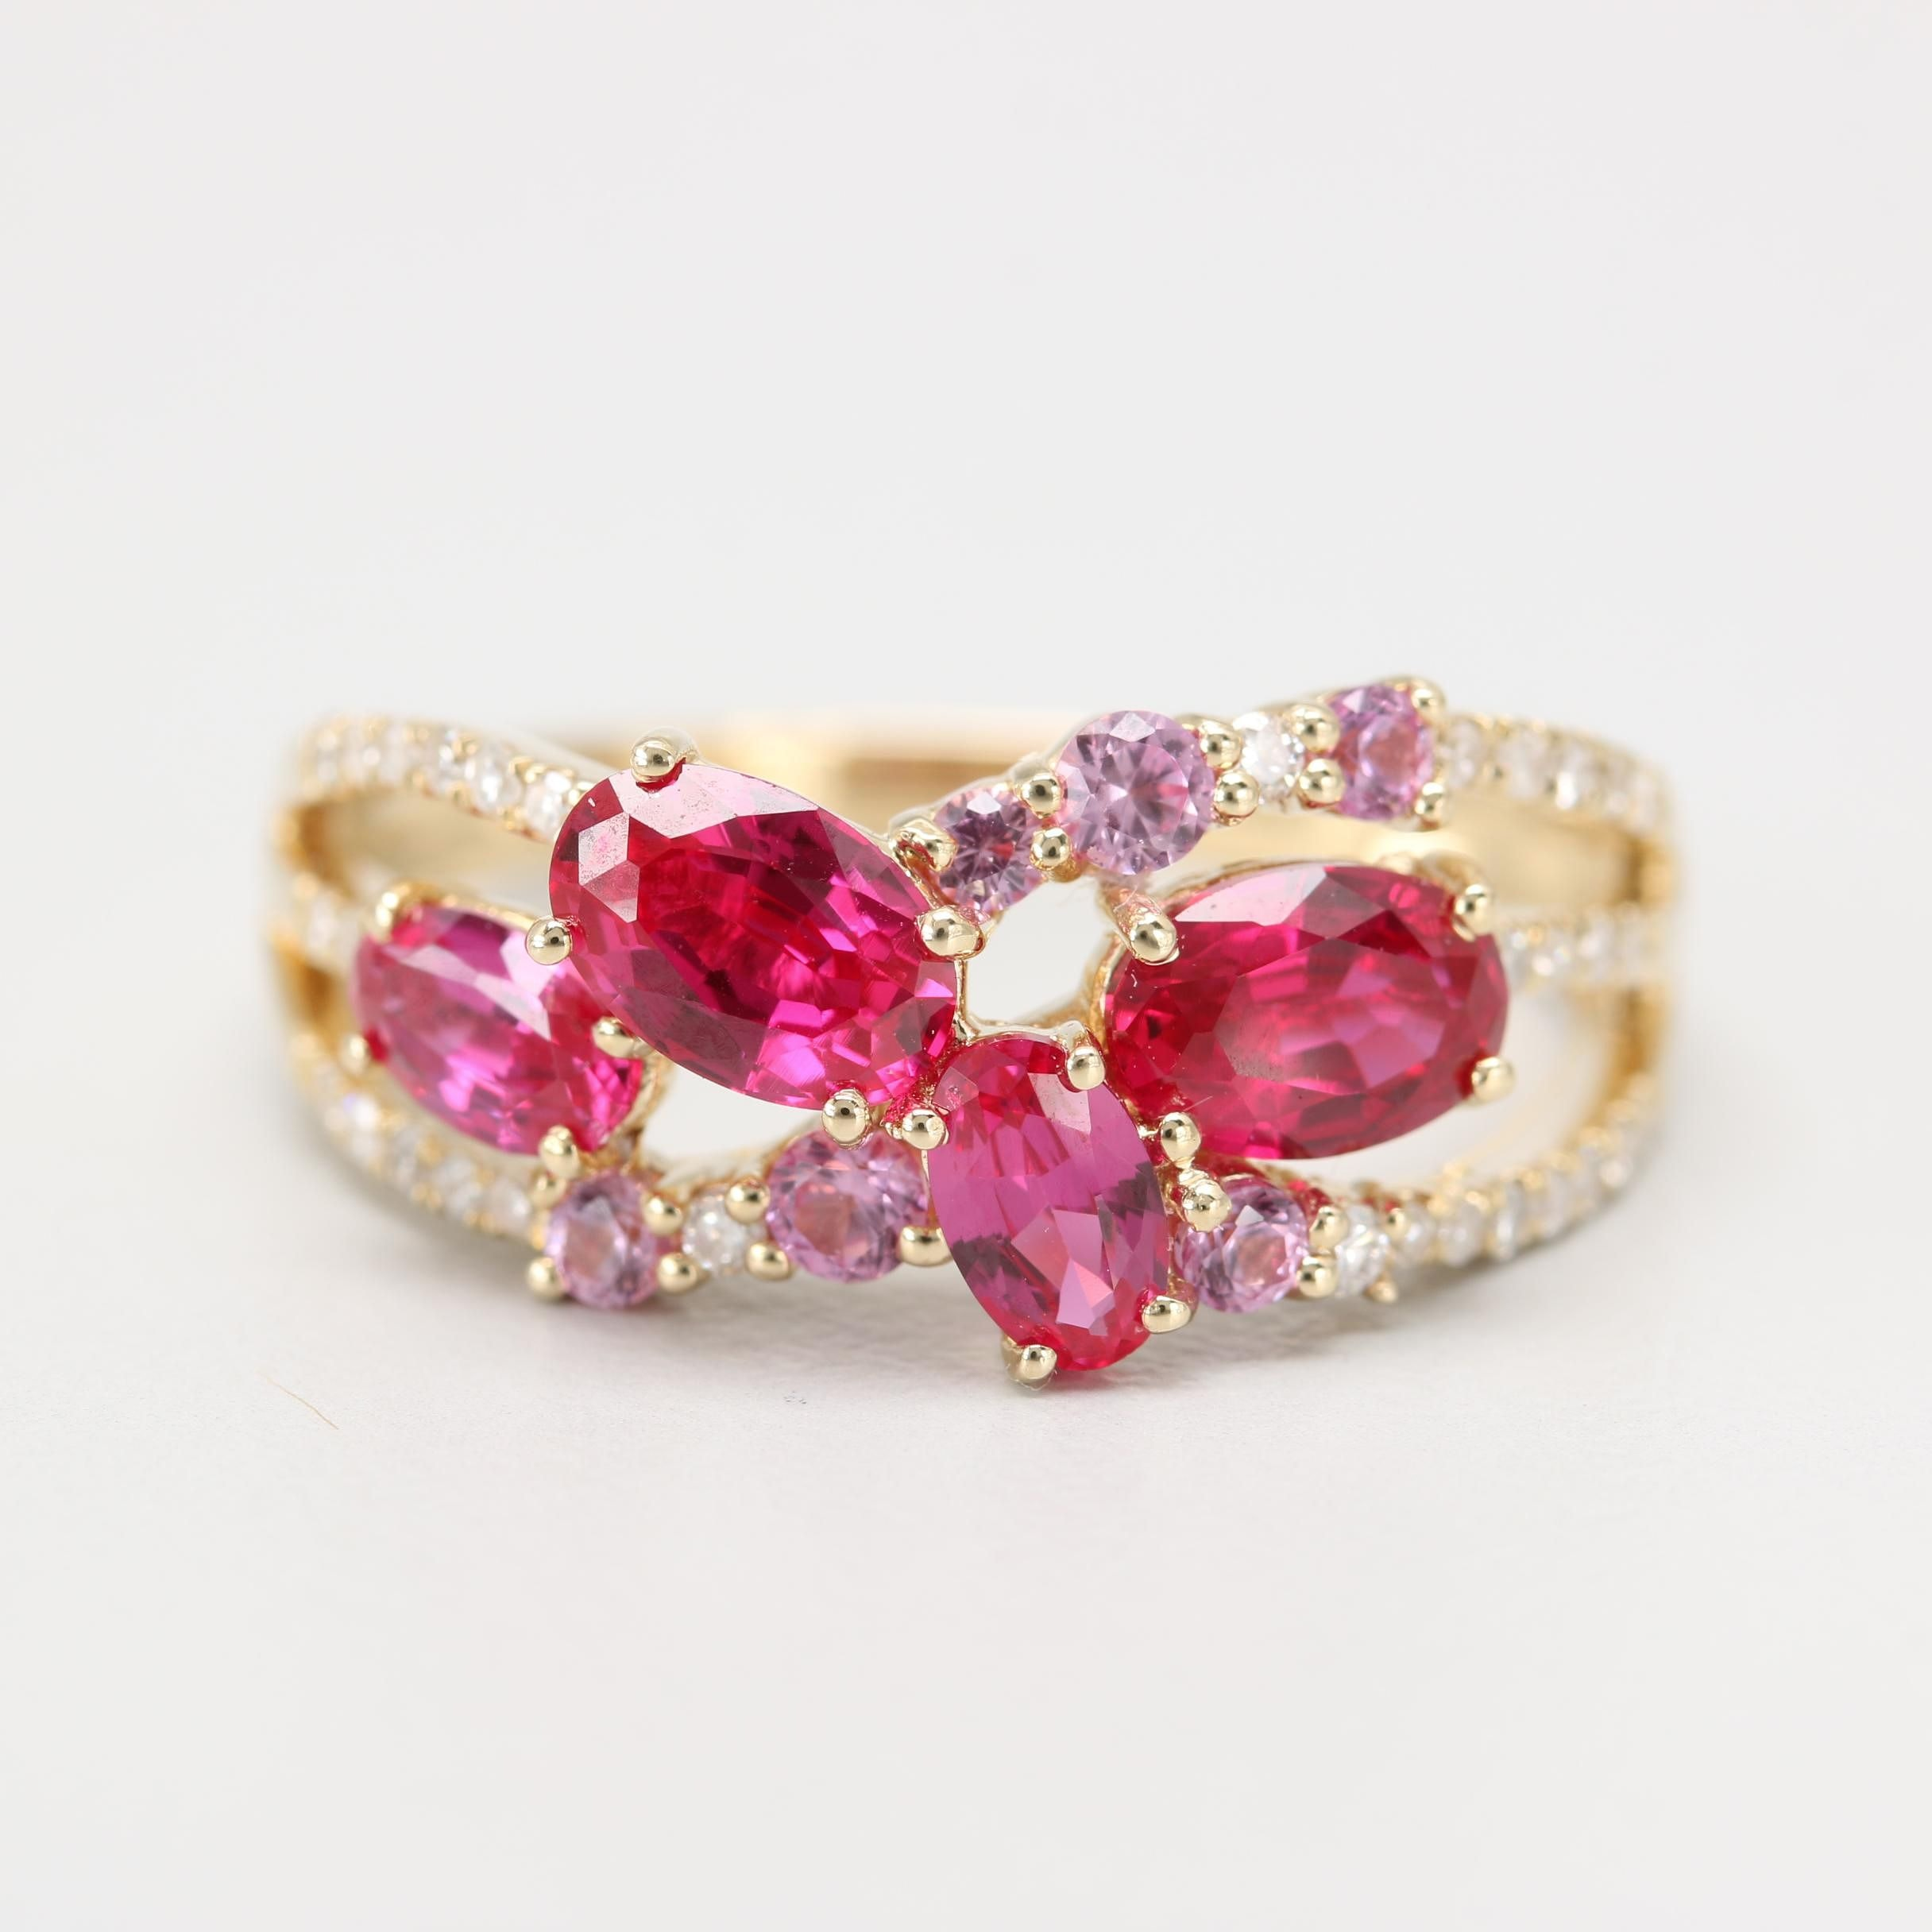 14K Yellow Gold Synthetic Ruby, Synthetic Pink Sapphire and Diamond Ring